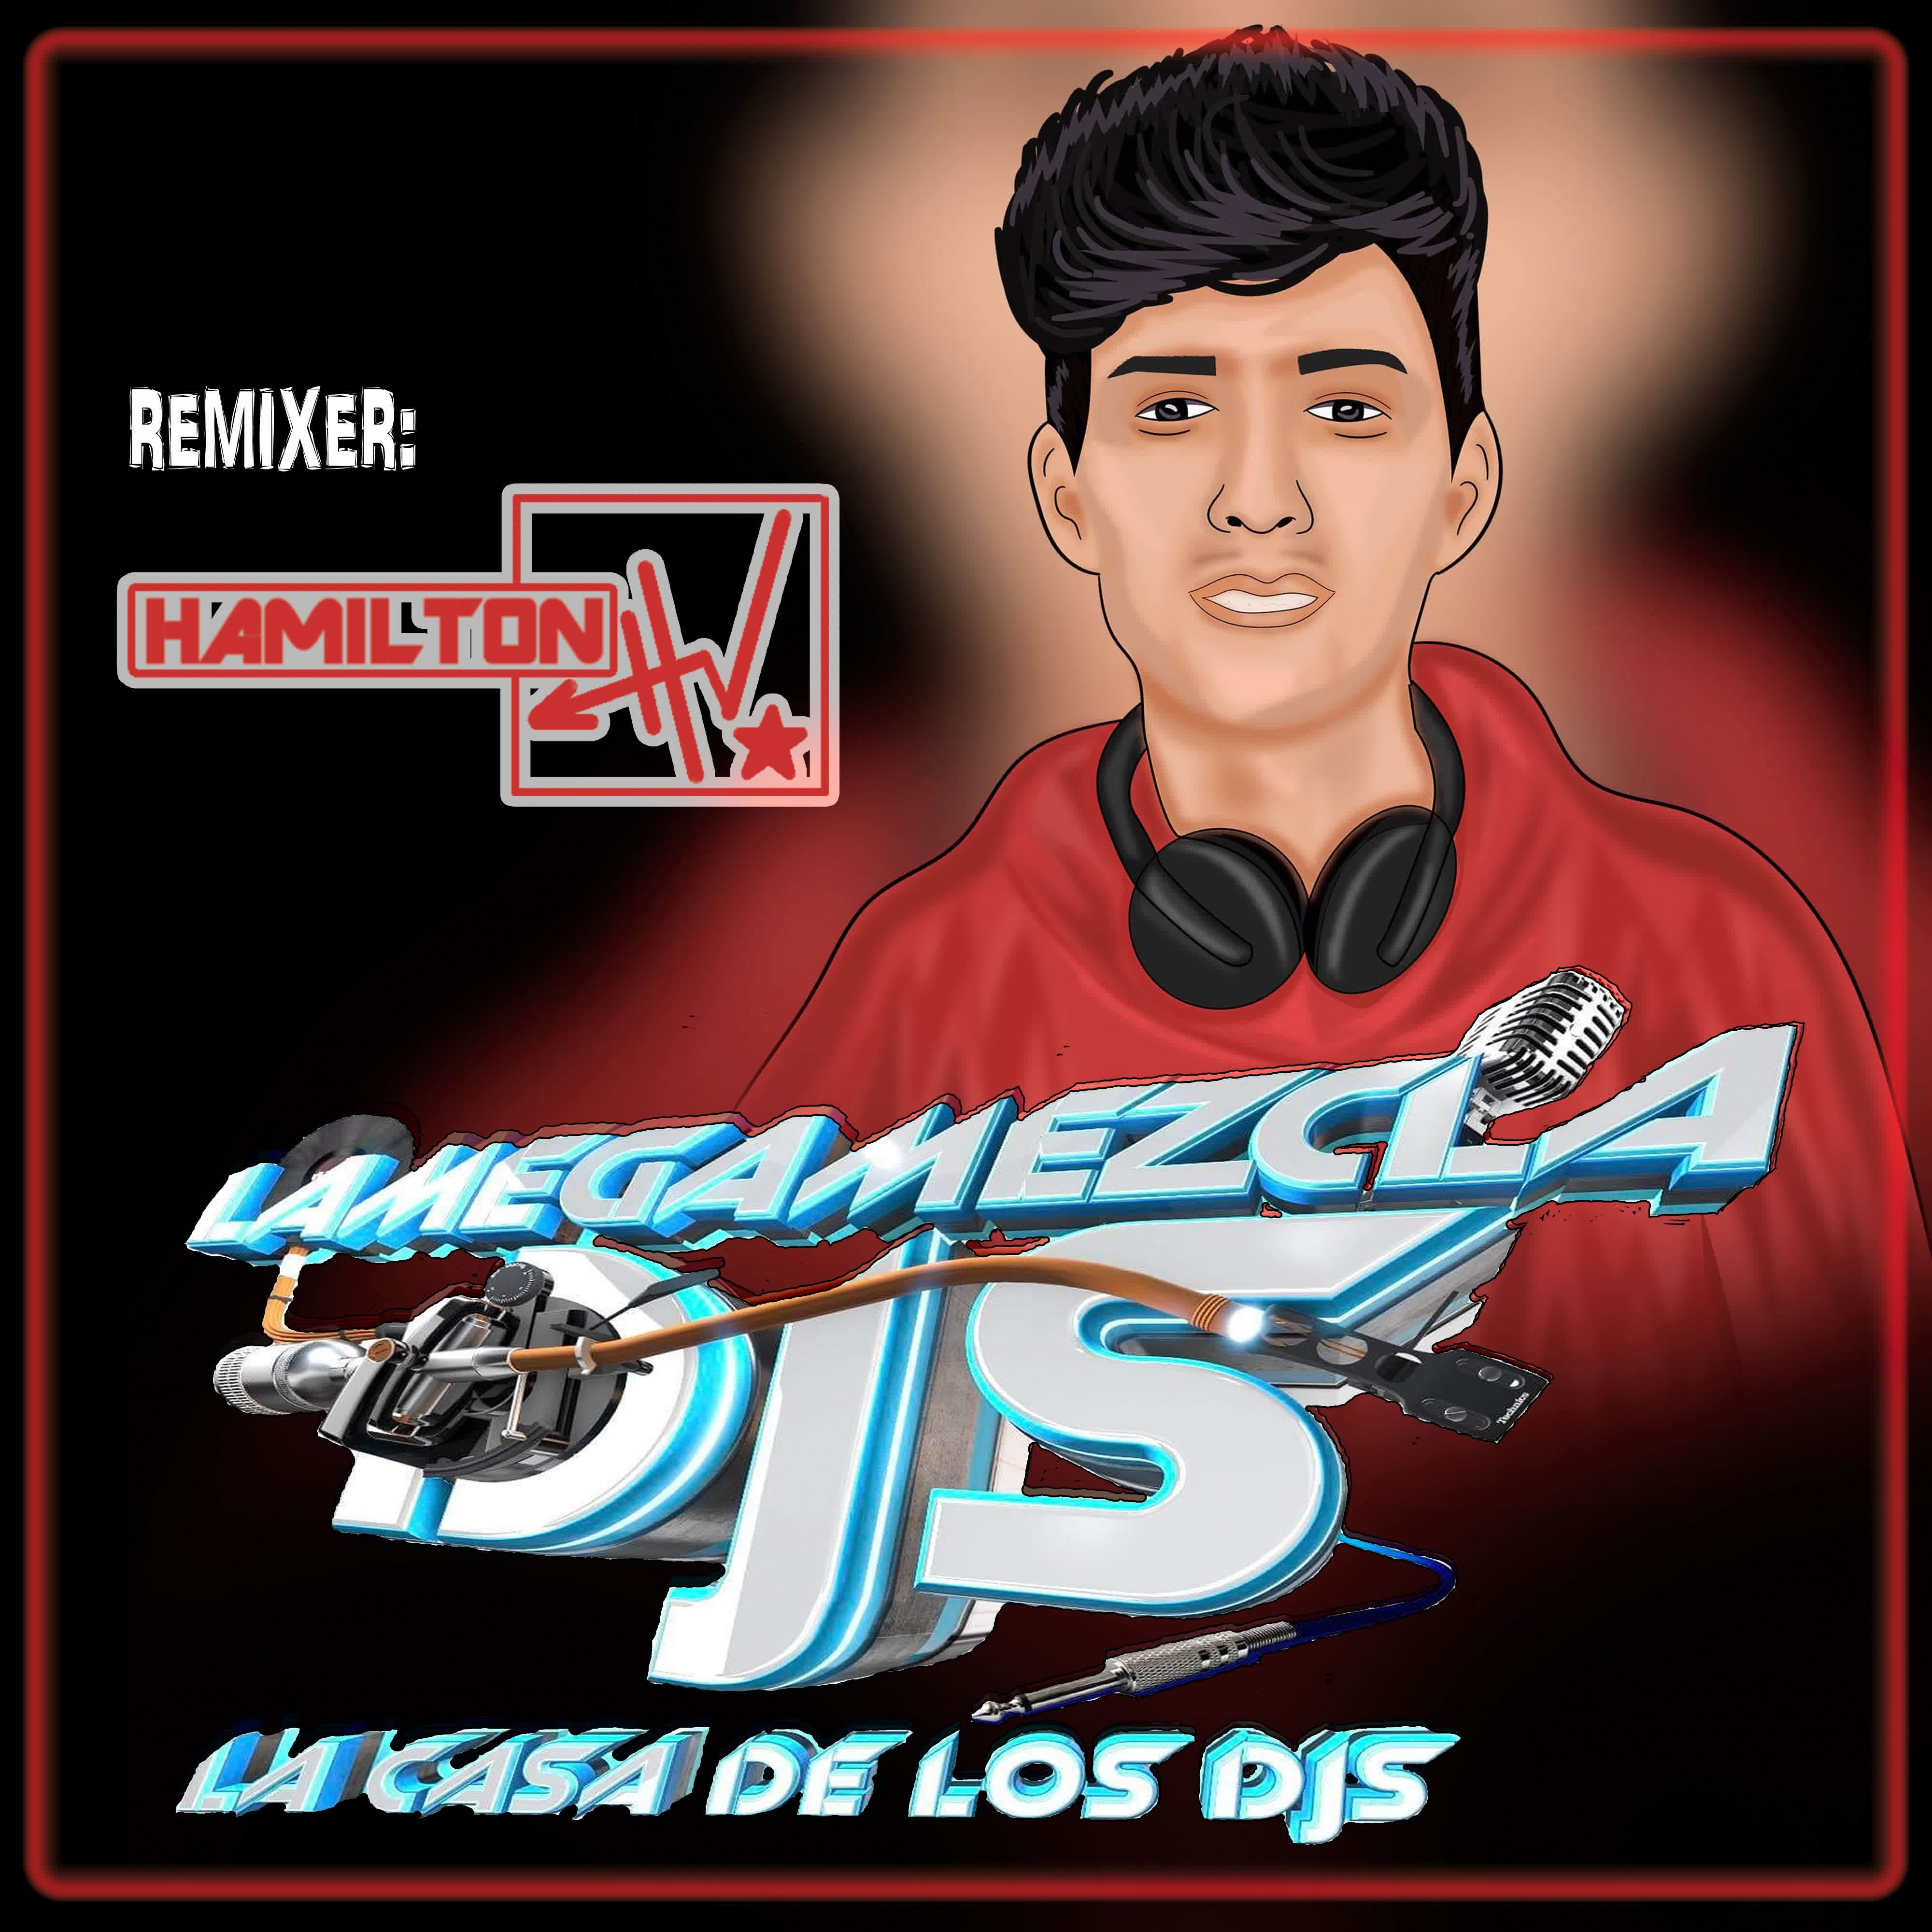 Shorty - Jerry Di (Intro-Extended 100BPM)Hamilton HV - www.lamegamezcladjs.com.mp3